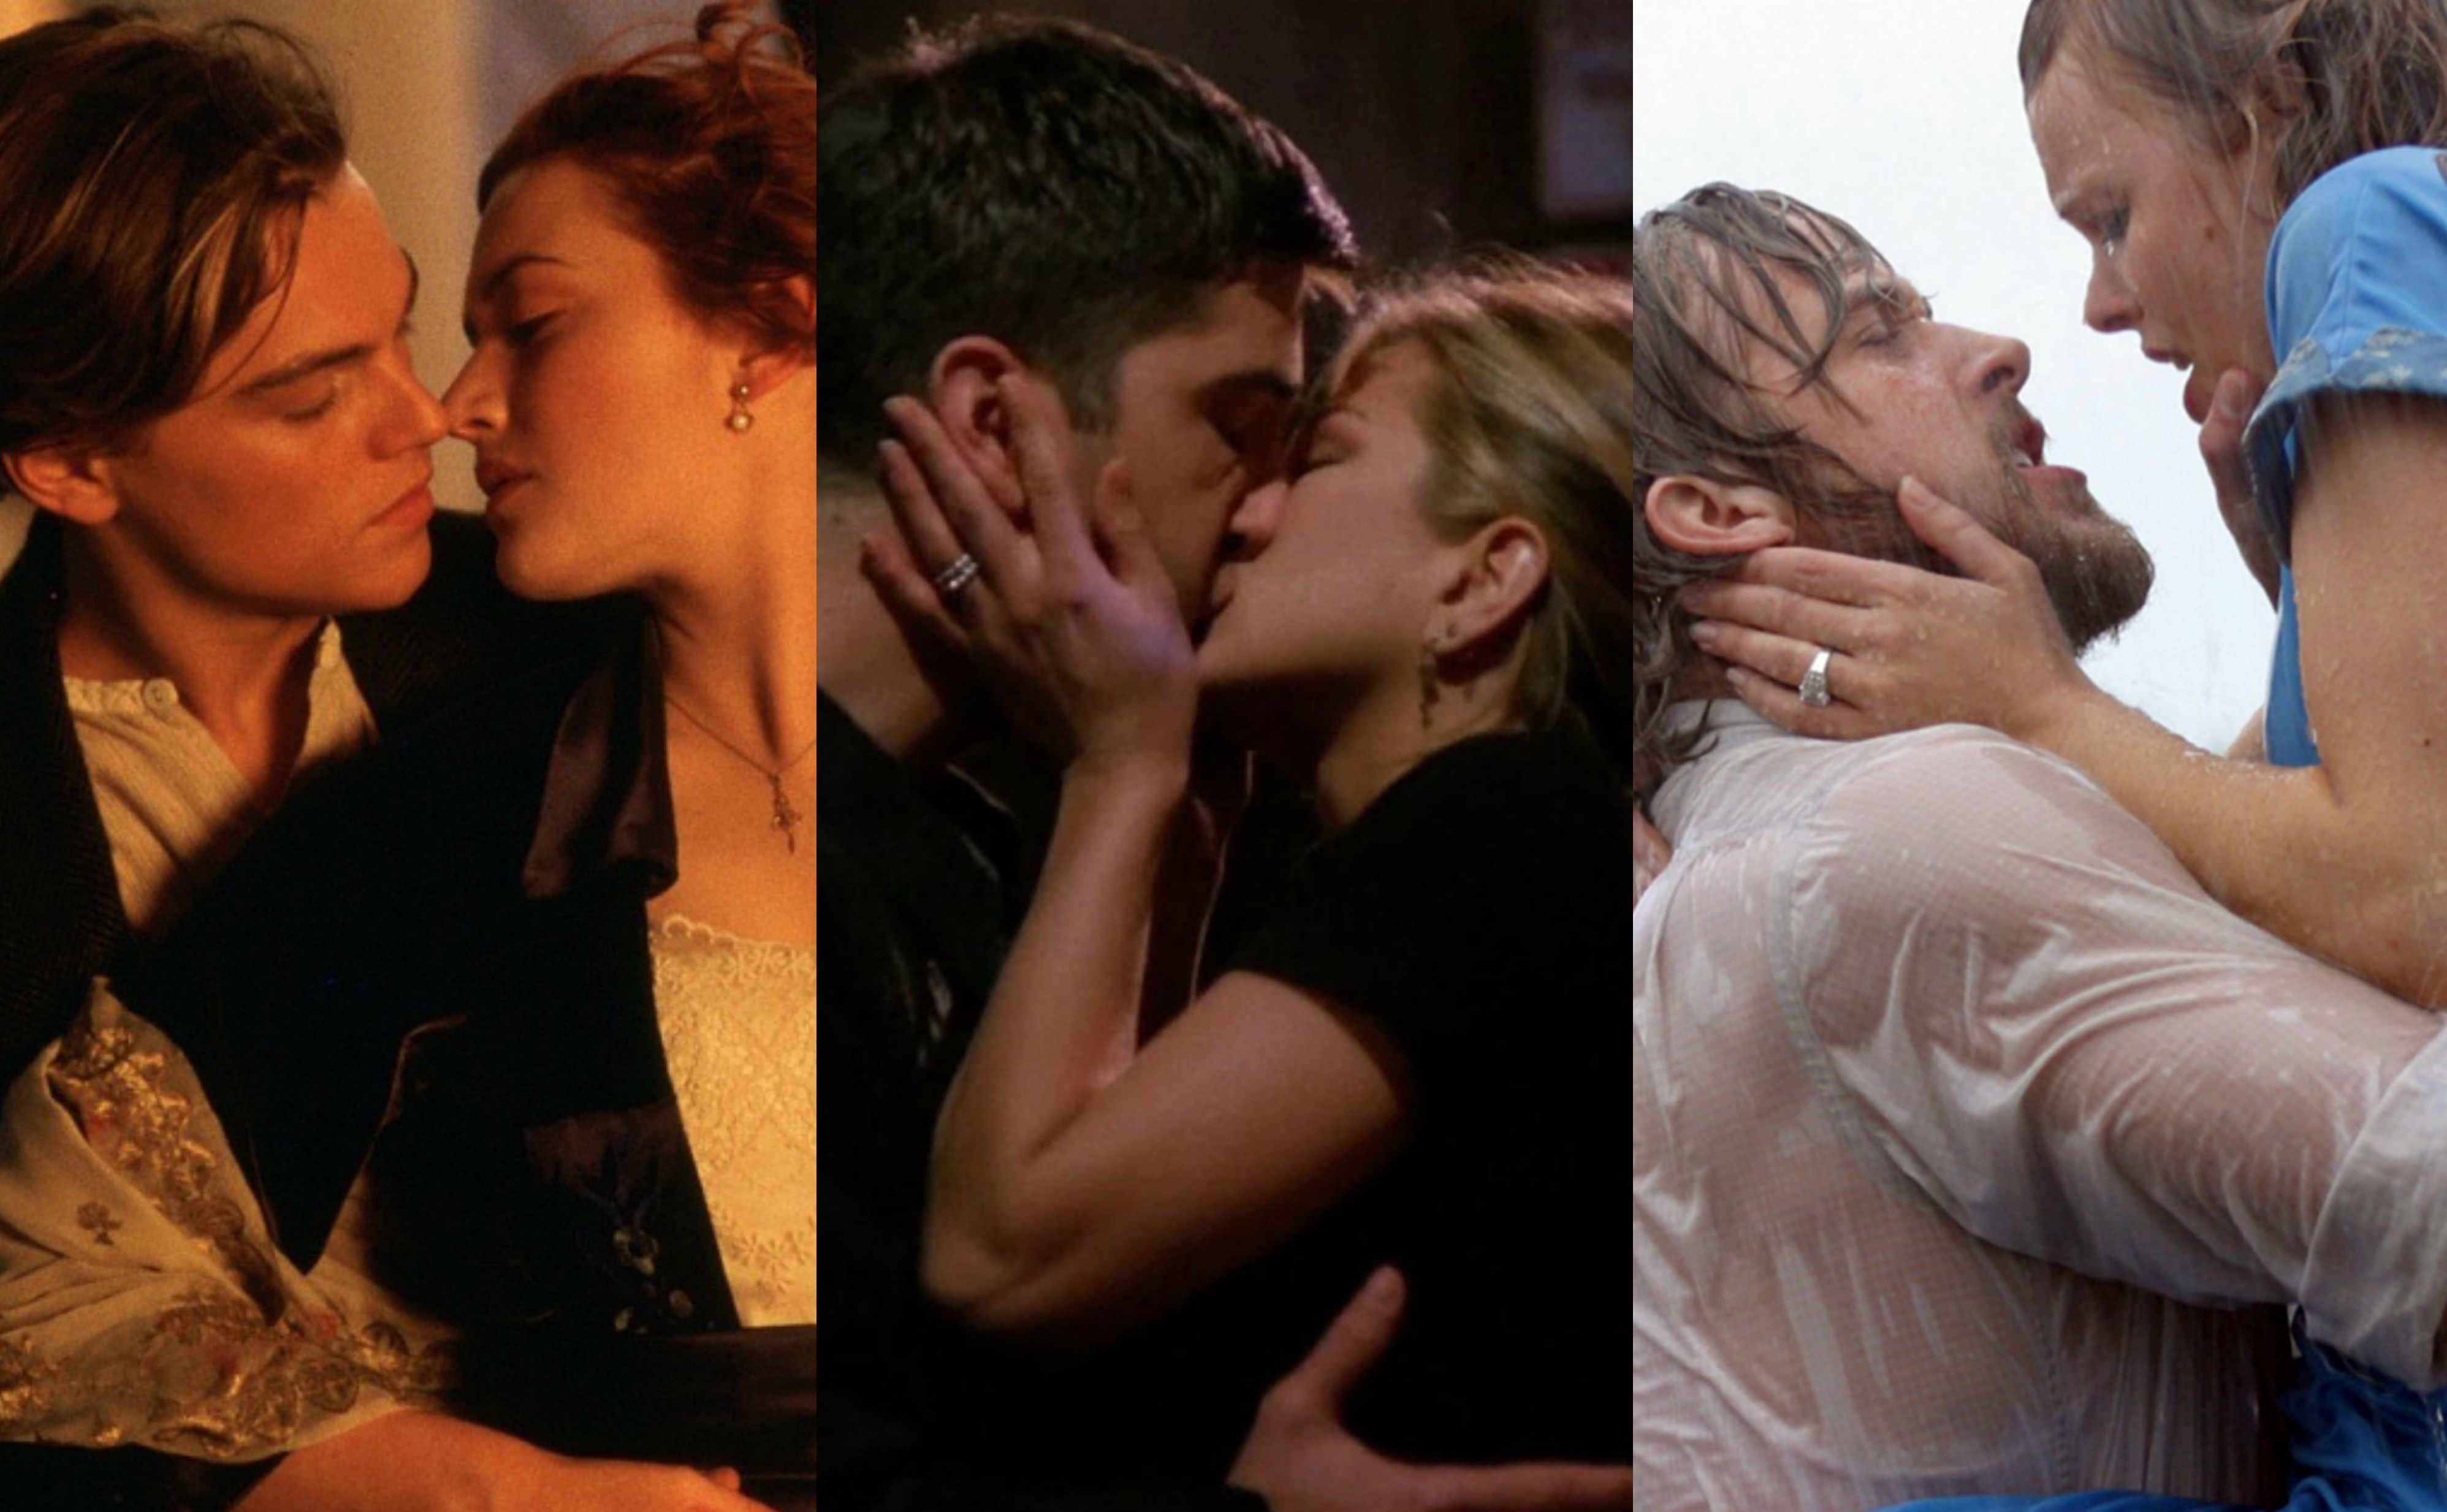 If you really want to get your smooch on, pucker up and check the top 20 most iconic kisses in pop culture history! (Photos: Release)